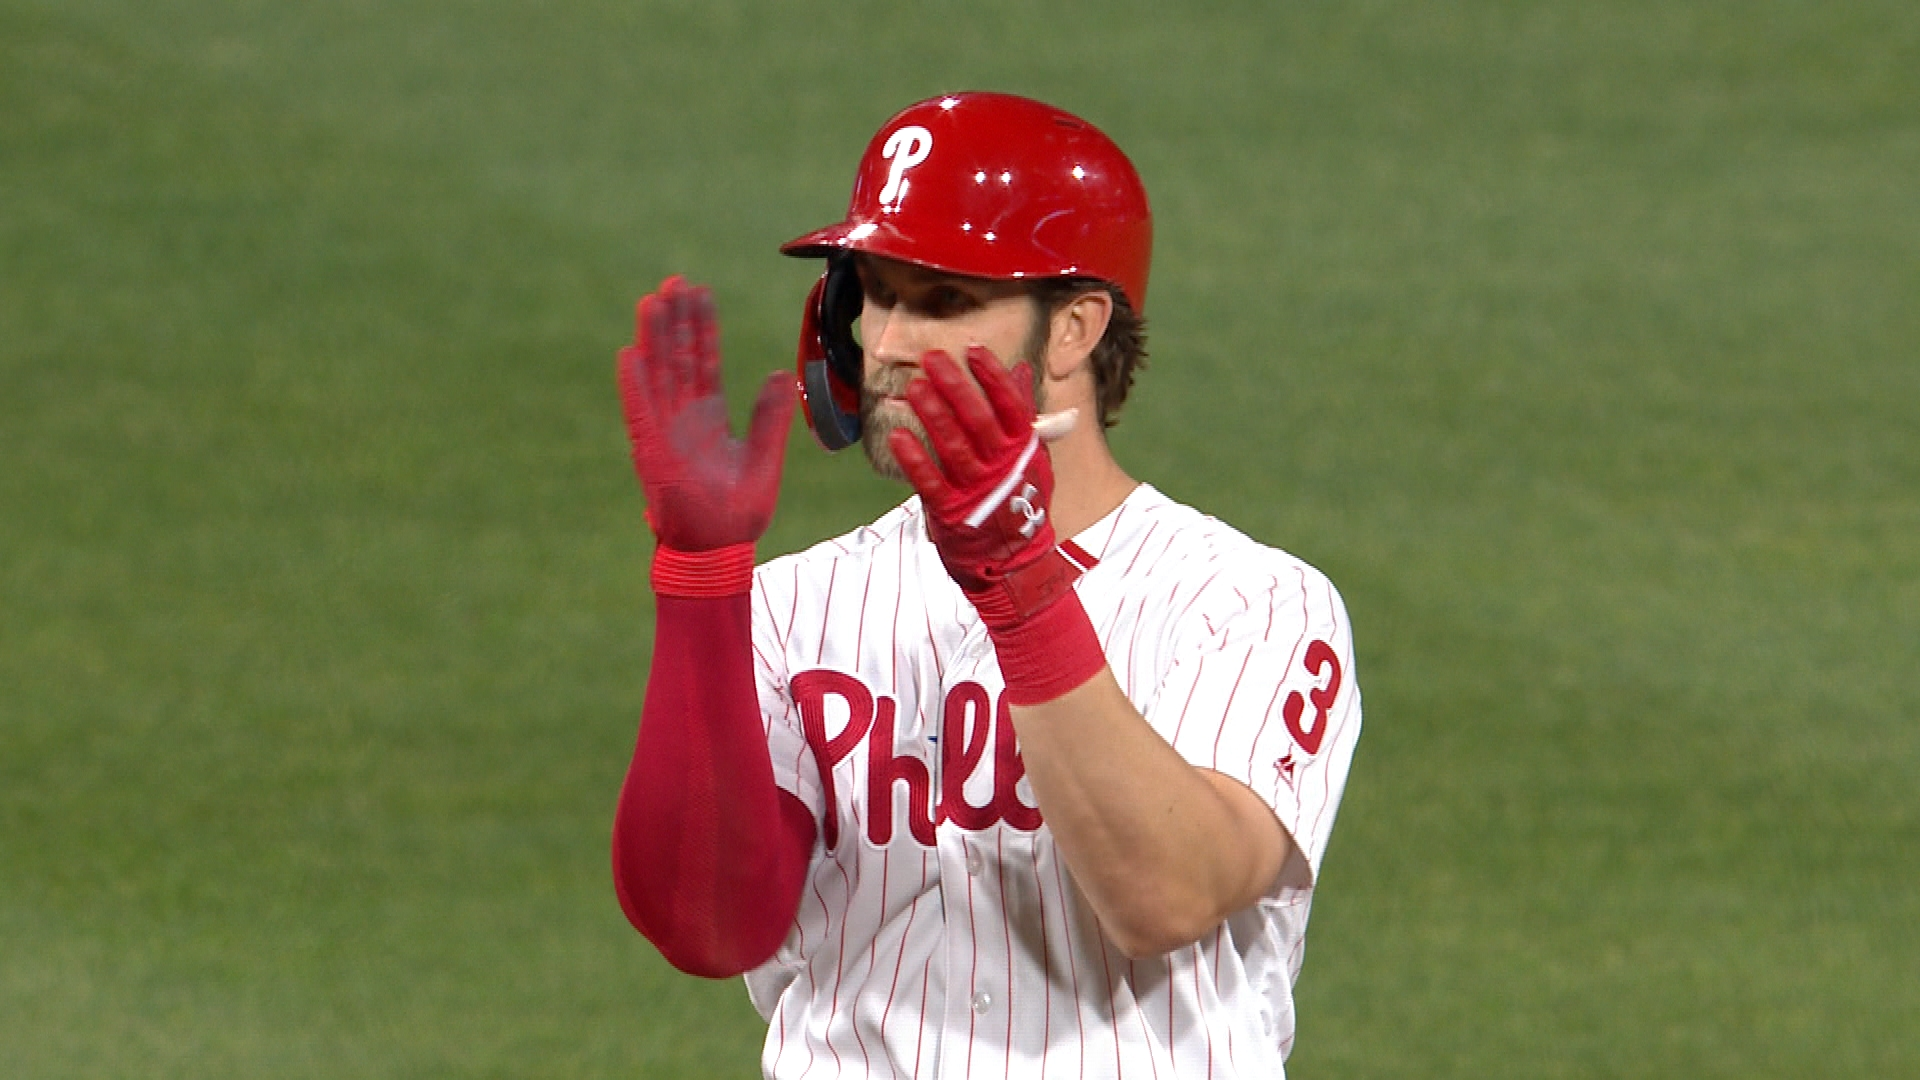 d26ebfcd5 Bryce Harper gave the perfect gift on the Phillie Phanatic s ...